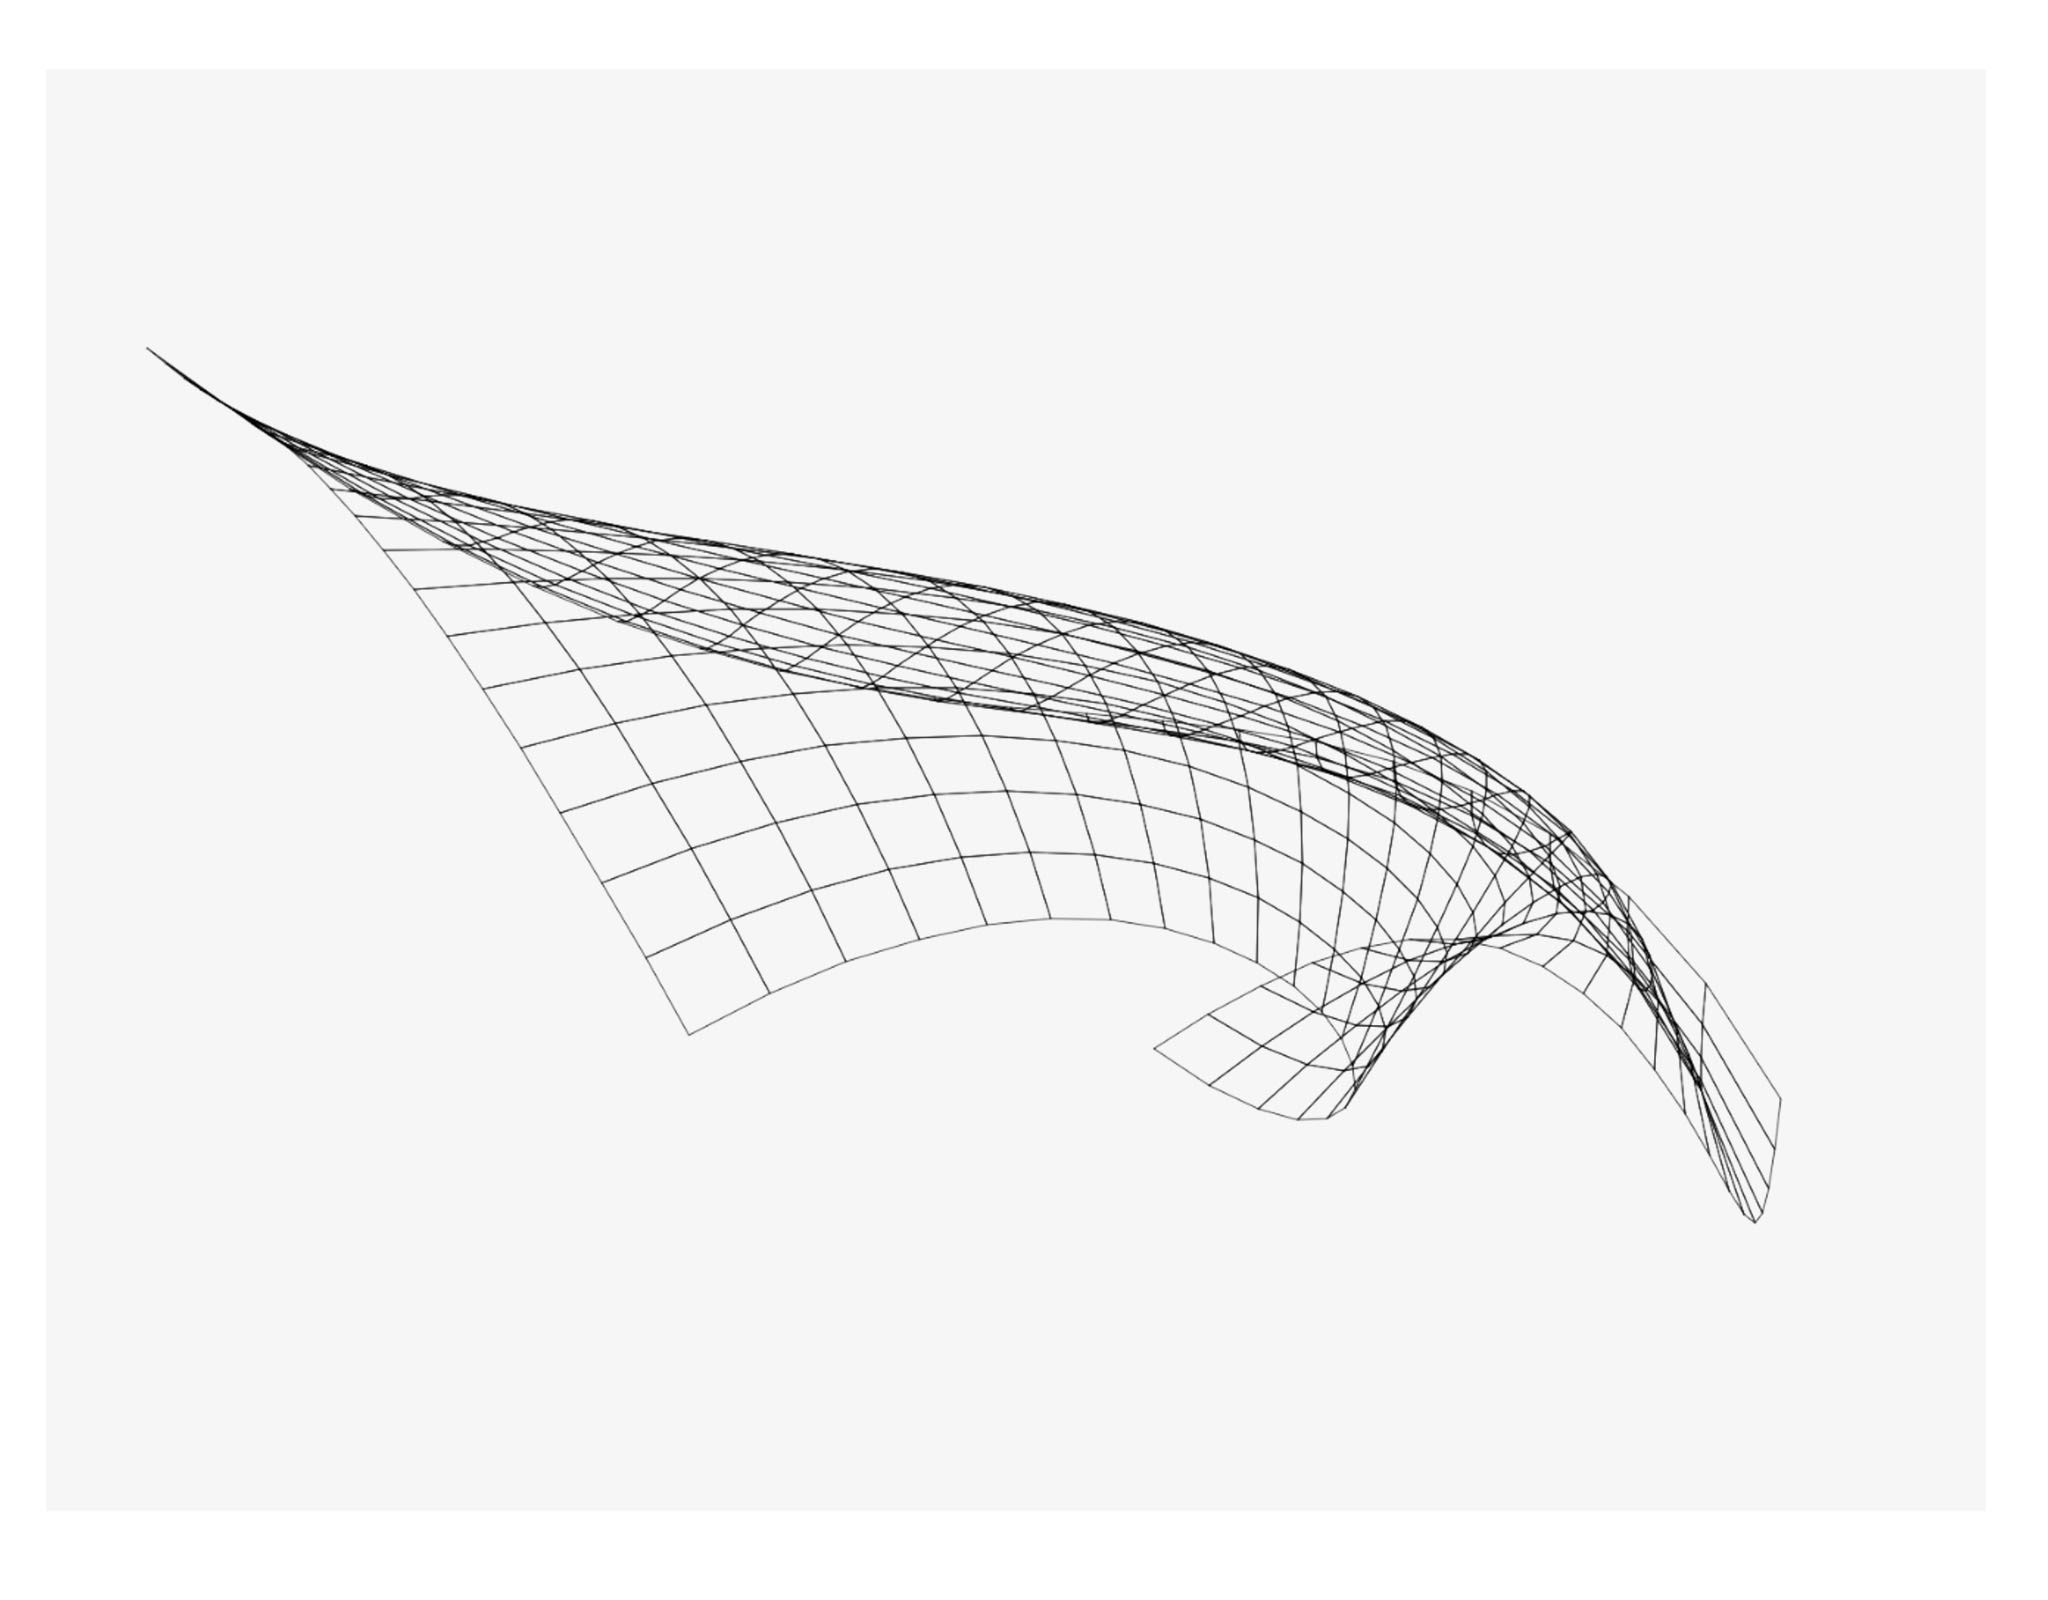 """Image from a custom software system developed for the exhibition, which reconstructs Steven A. Coons' pioneering mathematical technique for parametric surface representation, the """"Coons patch,"""" enabling users to interact with it."""